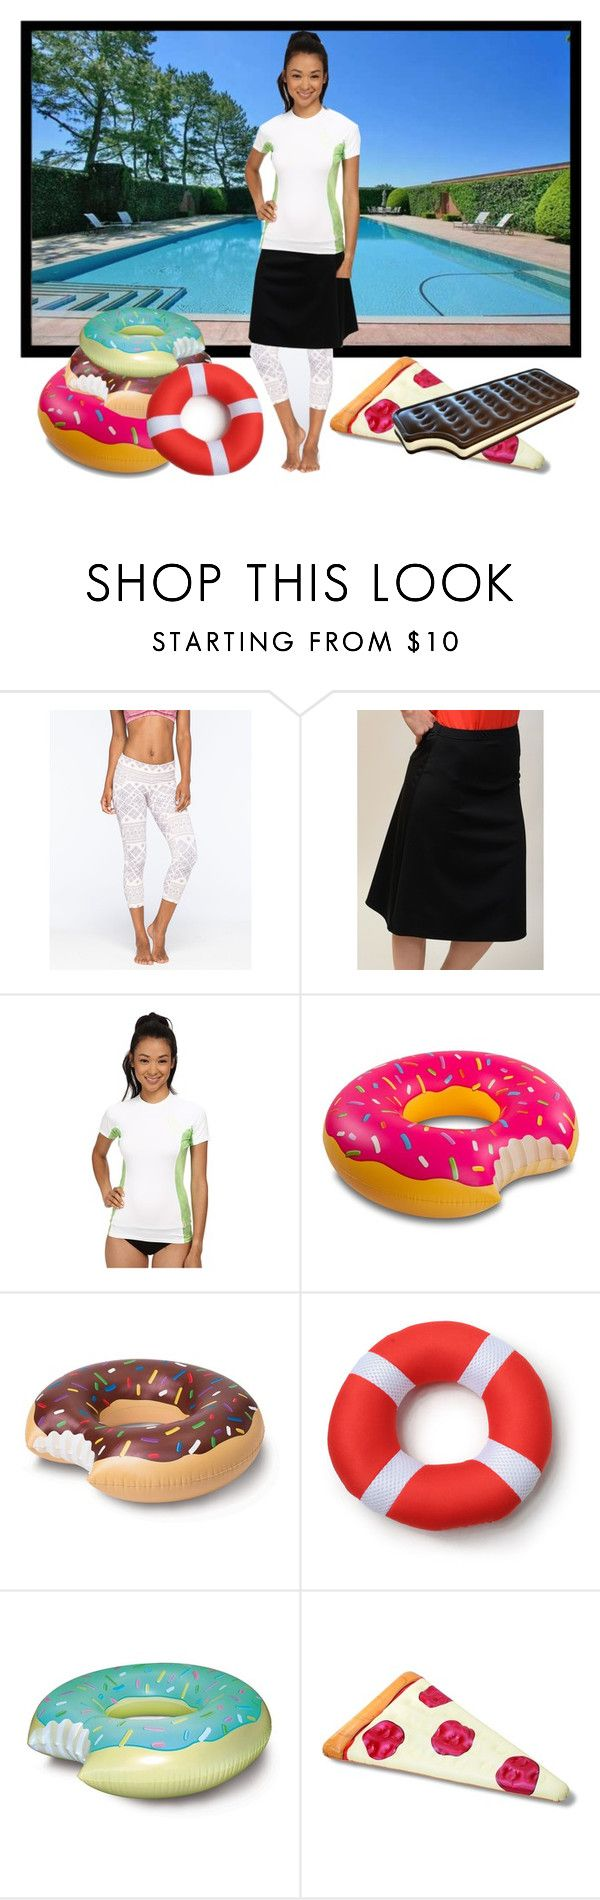 """""""{Day 6: Pool}"""" by maggiesmelody ❤ liked on Polyvore featuring O'Neill, Undercover Waterwear, INC International Concepts, Big Mouth, women's clothing, women, female, woman, misses and juniors"""